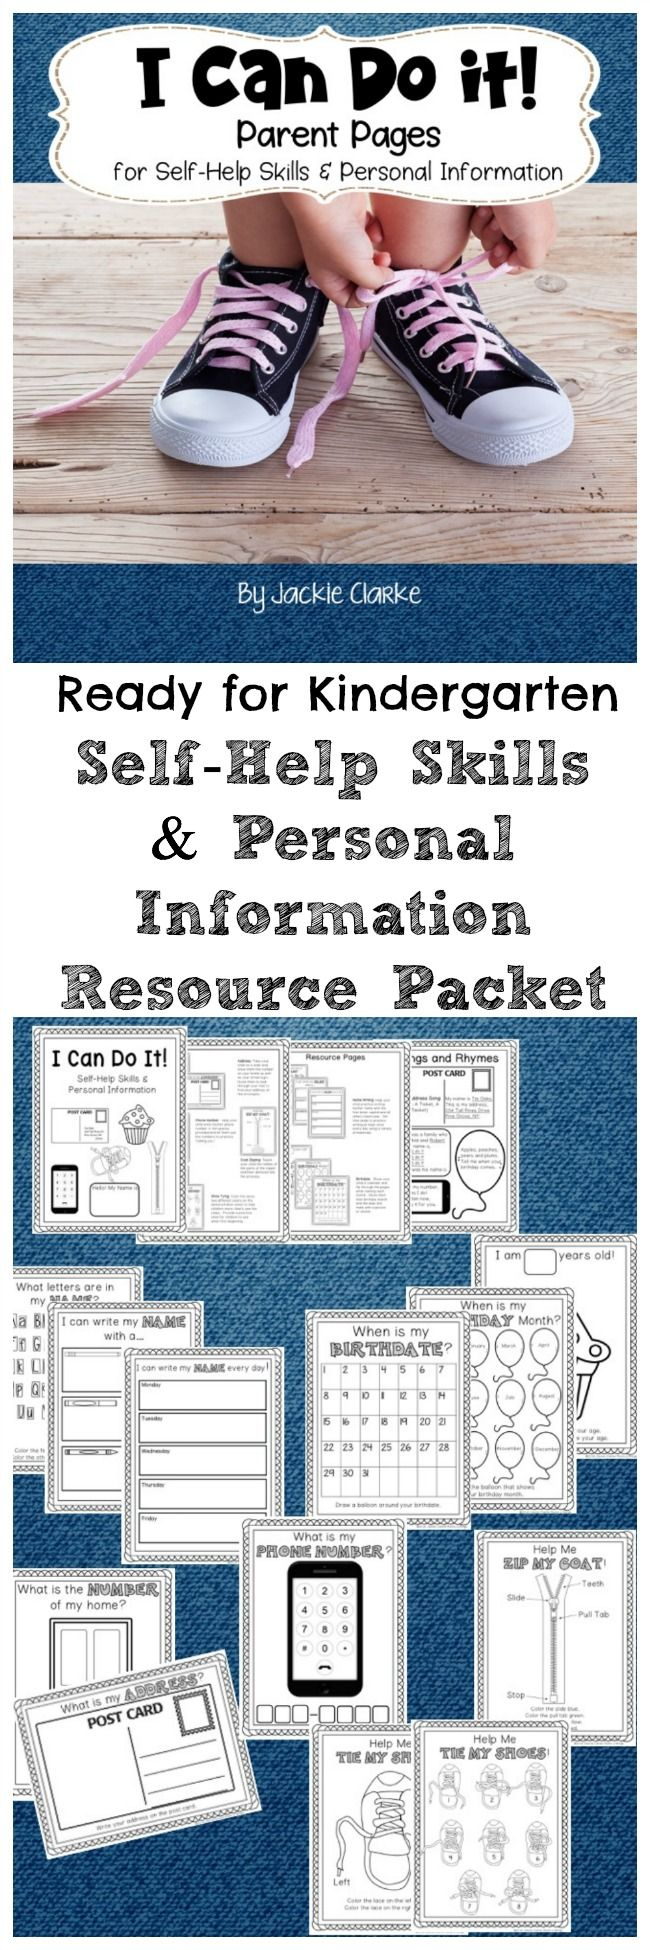 Looking for a way to support parents in helping their children learn important self help skills and personal information? Try this parent resource packet - great for orientation, open house, or conferences!